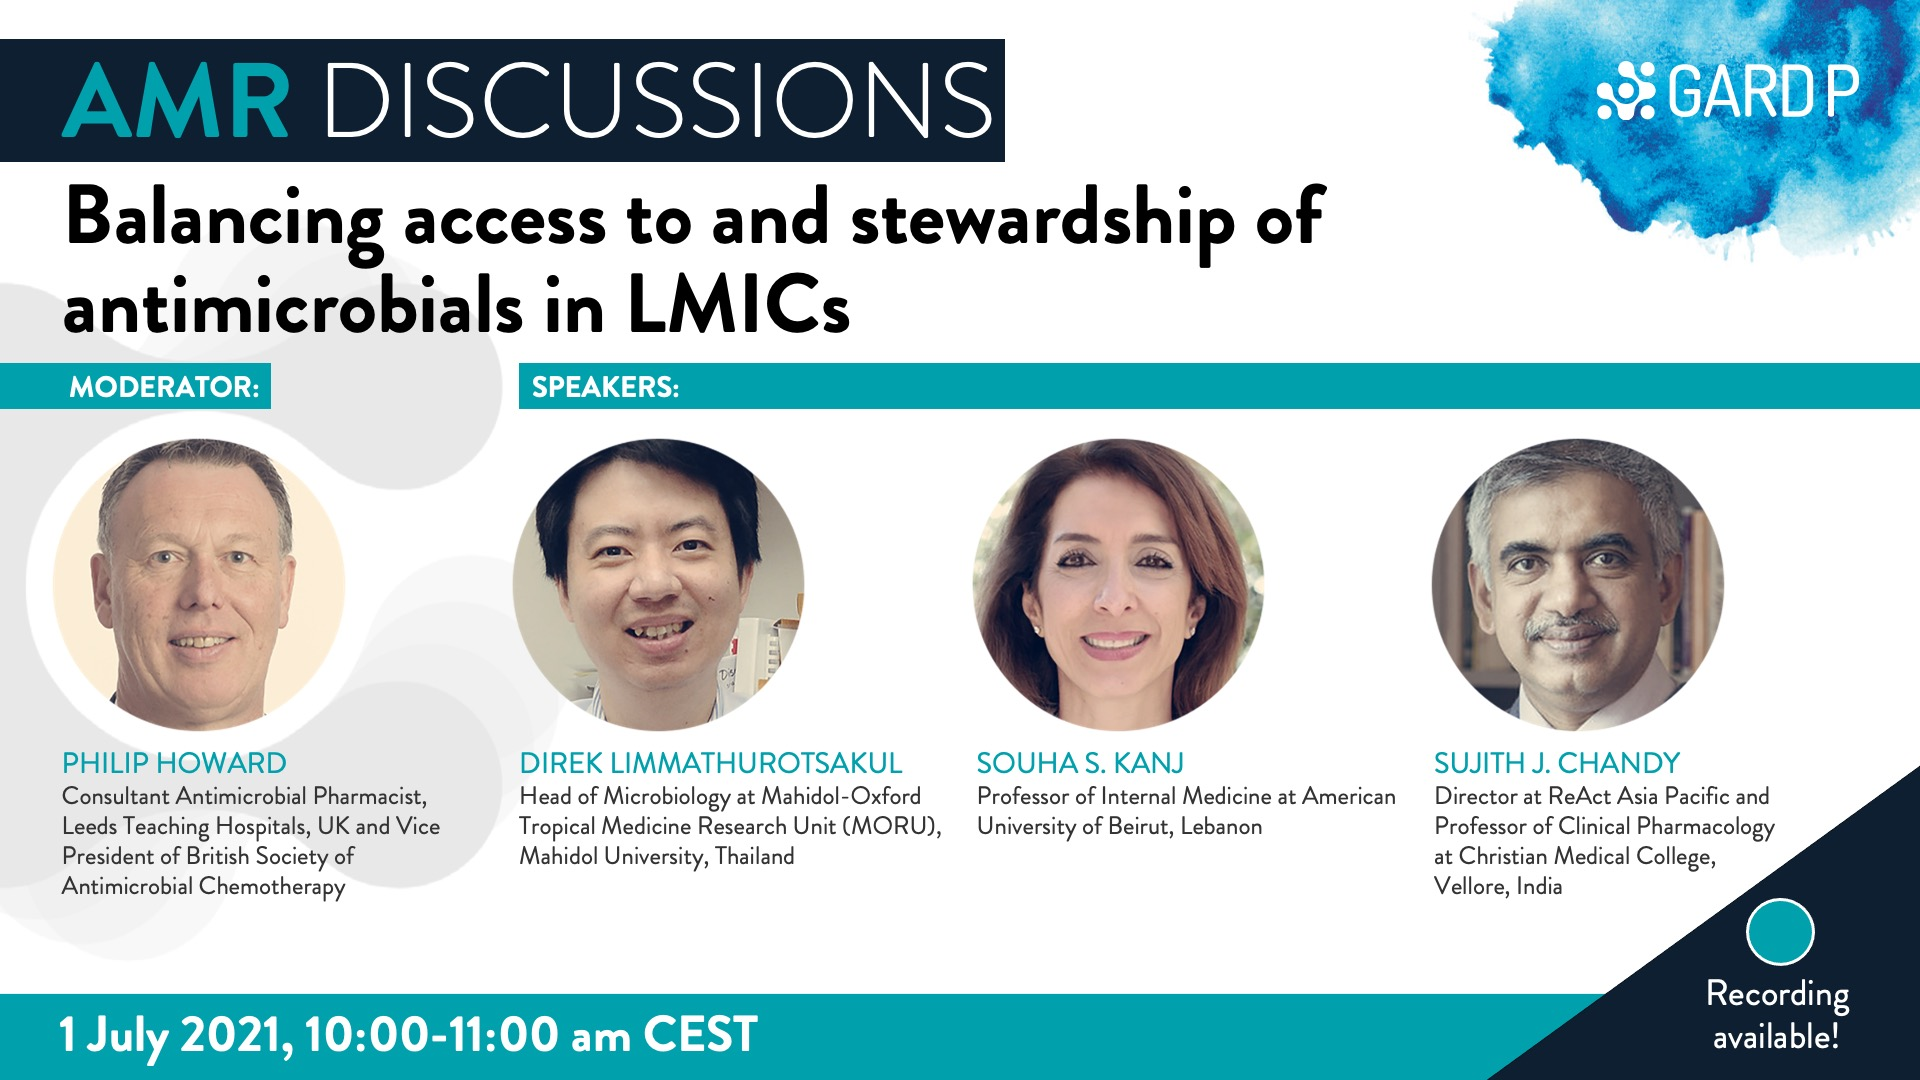 Balancing access to and stewardship of antimicrobials in LMICs